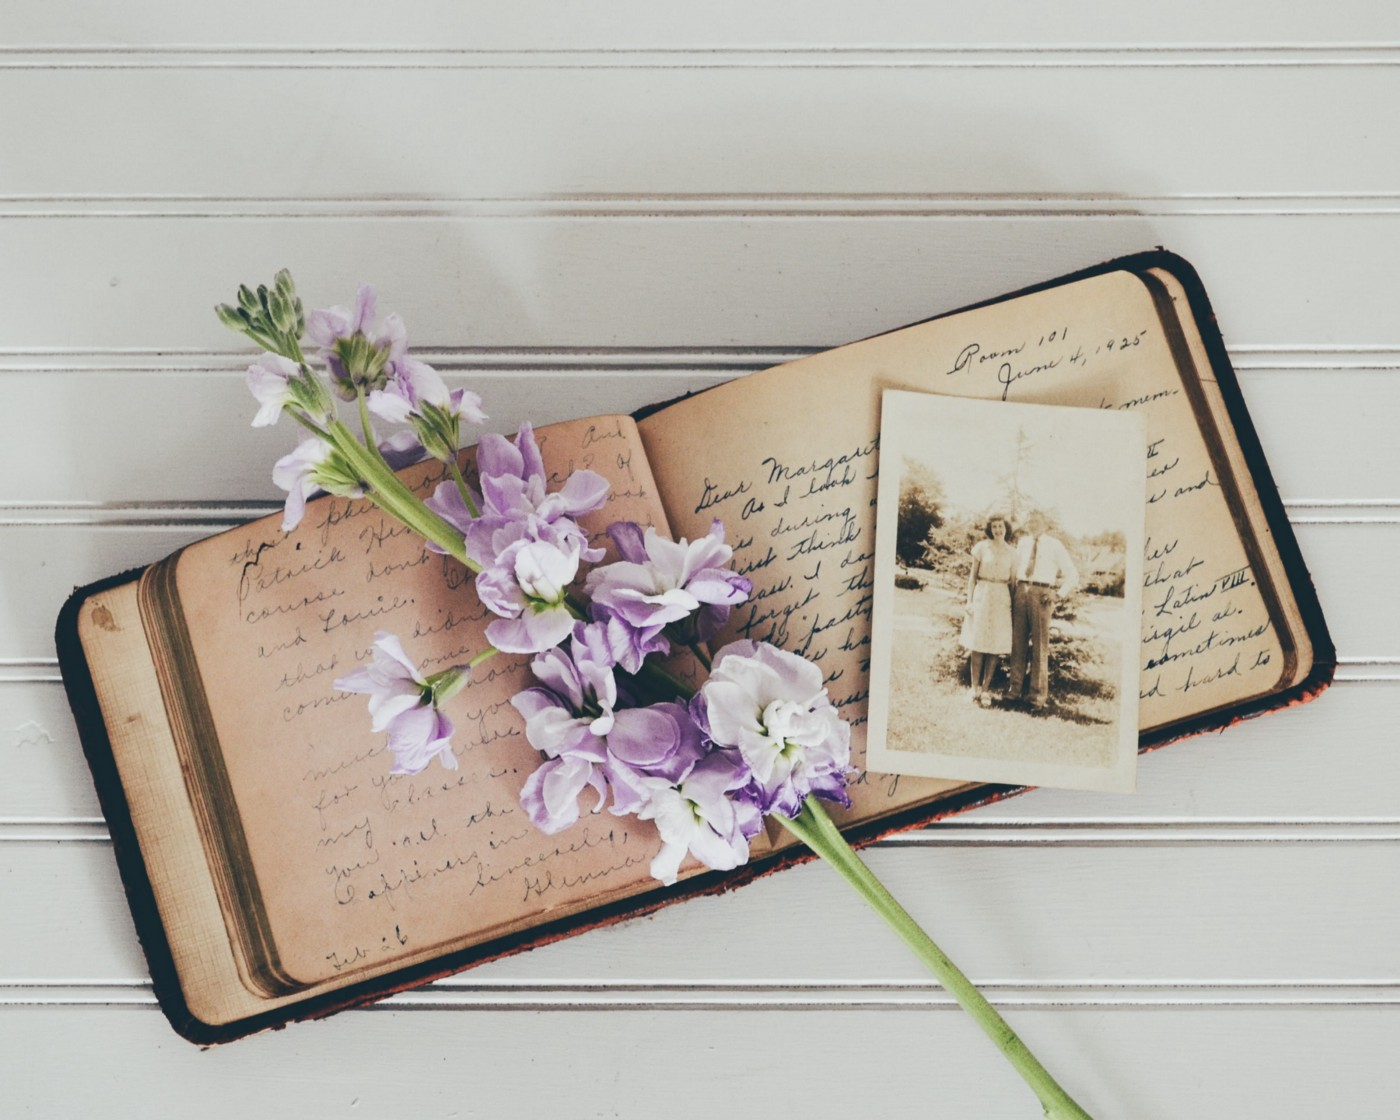 My unmourned diary